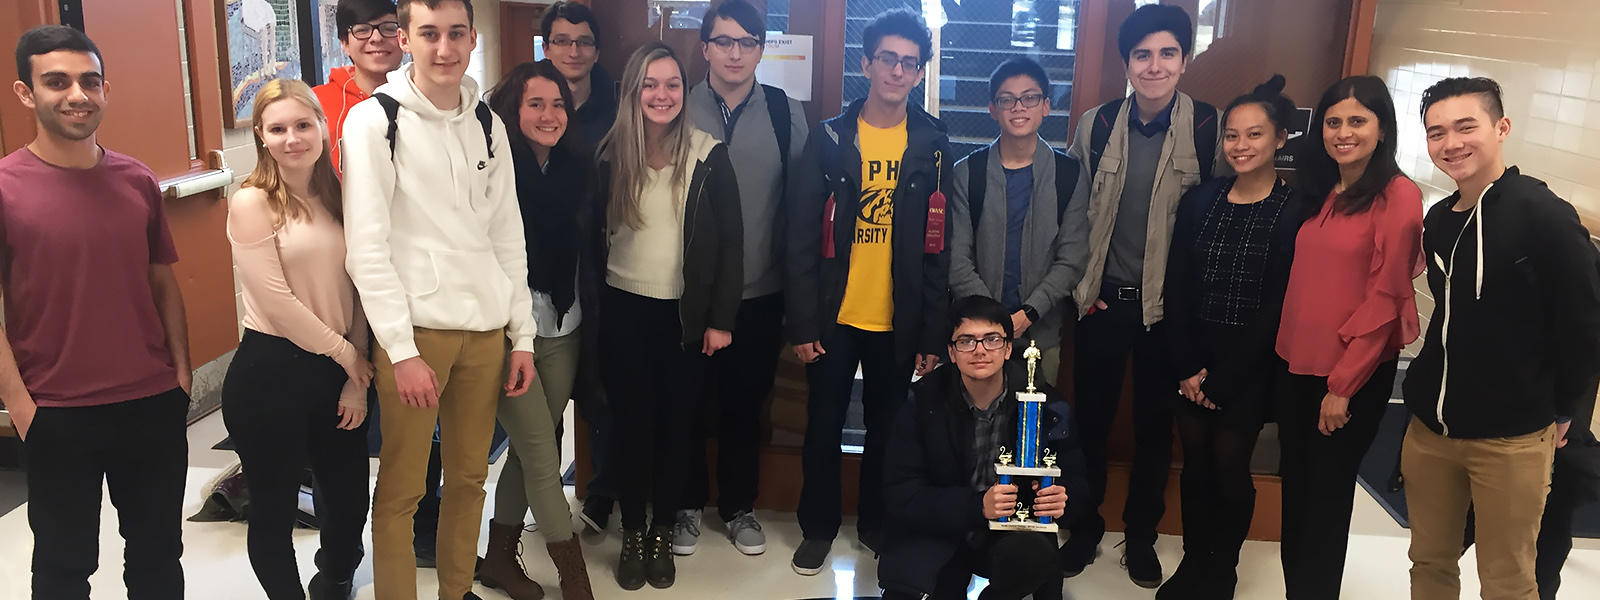 WYSE team members display their sectional runner-up trophy.